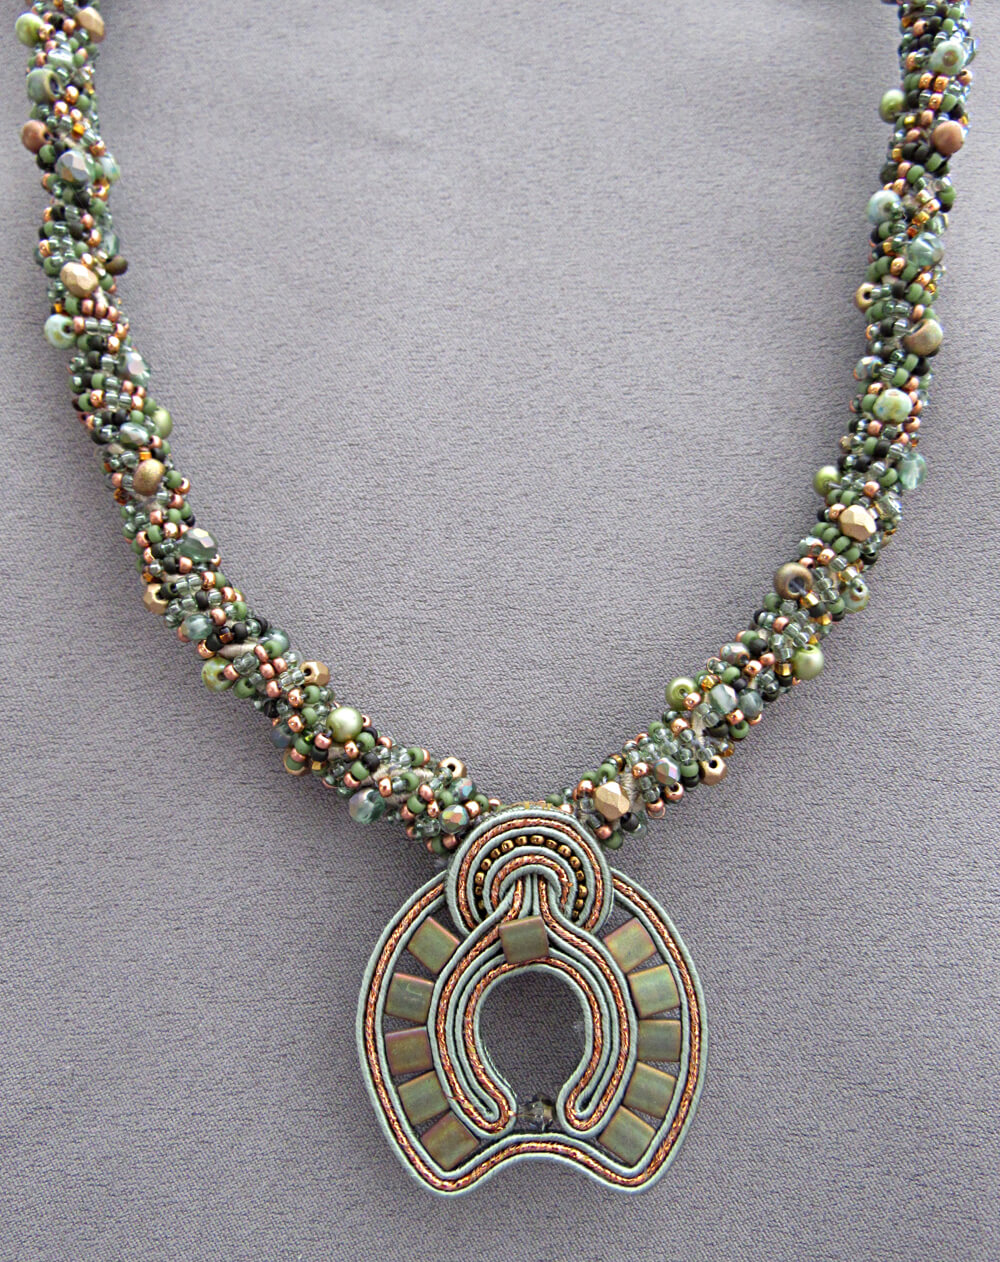 Karen Tretiak: Green Soutache Necklace, handcrafted necklace